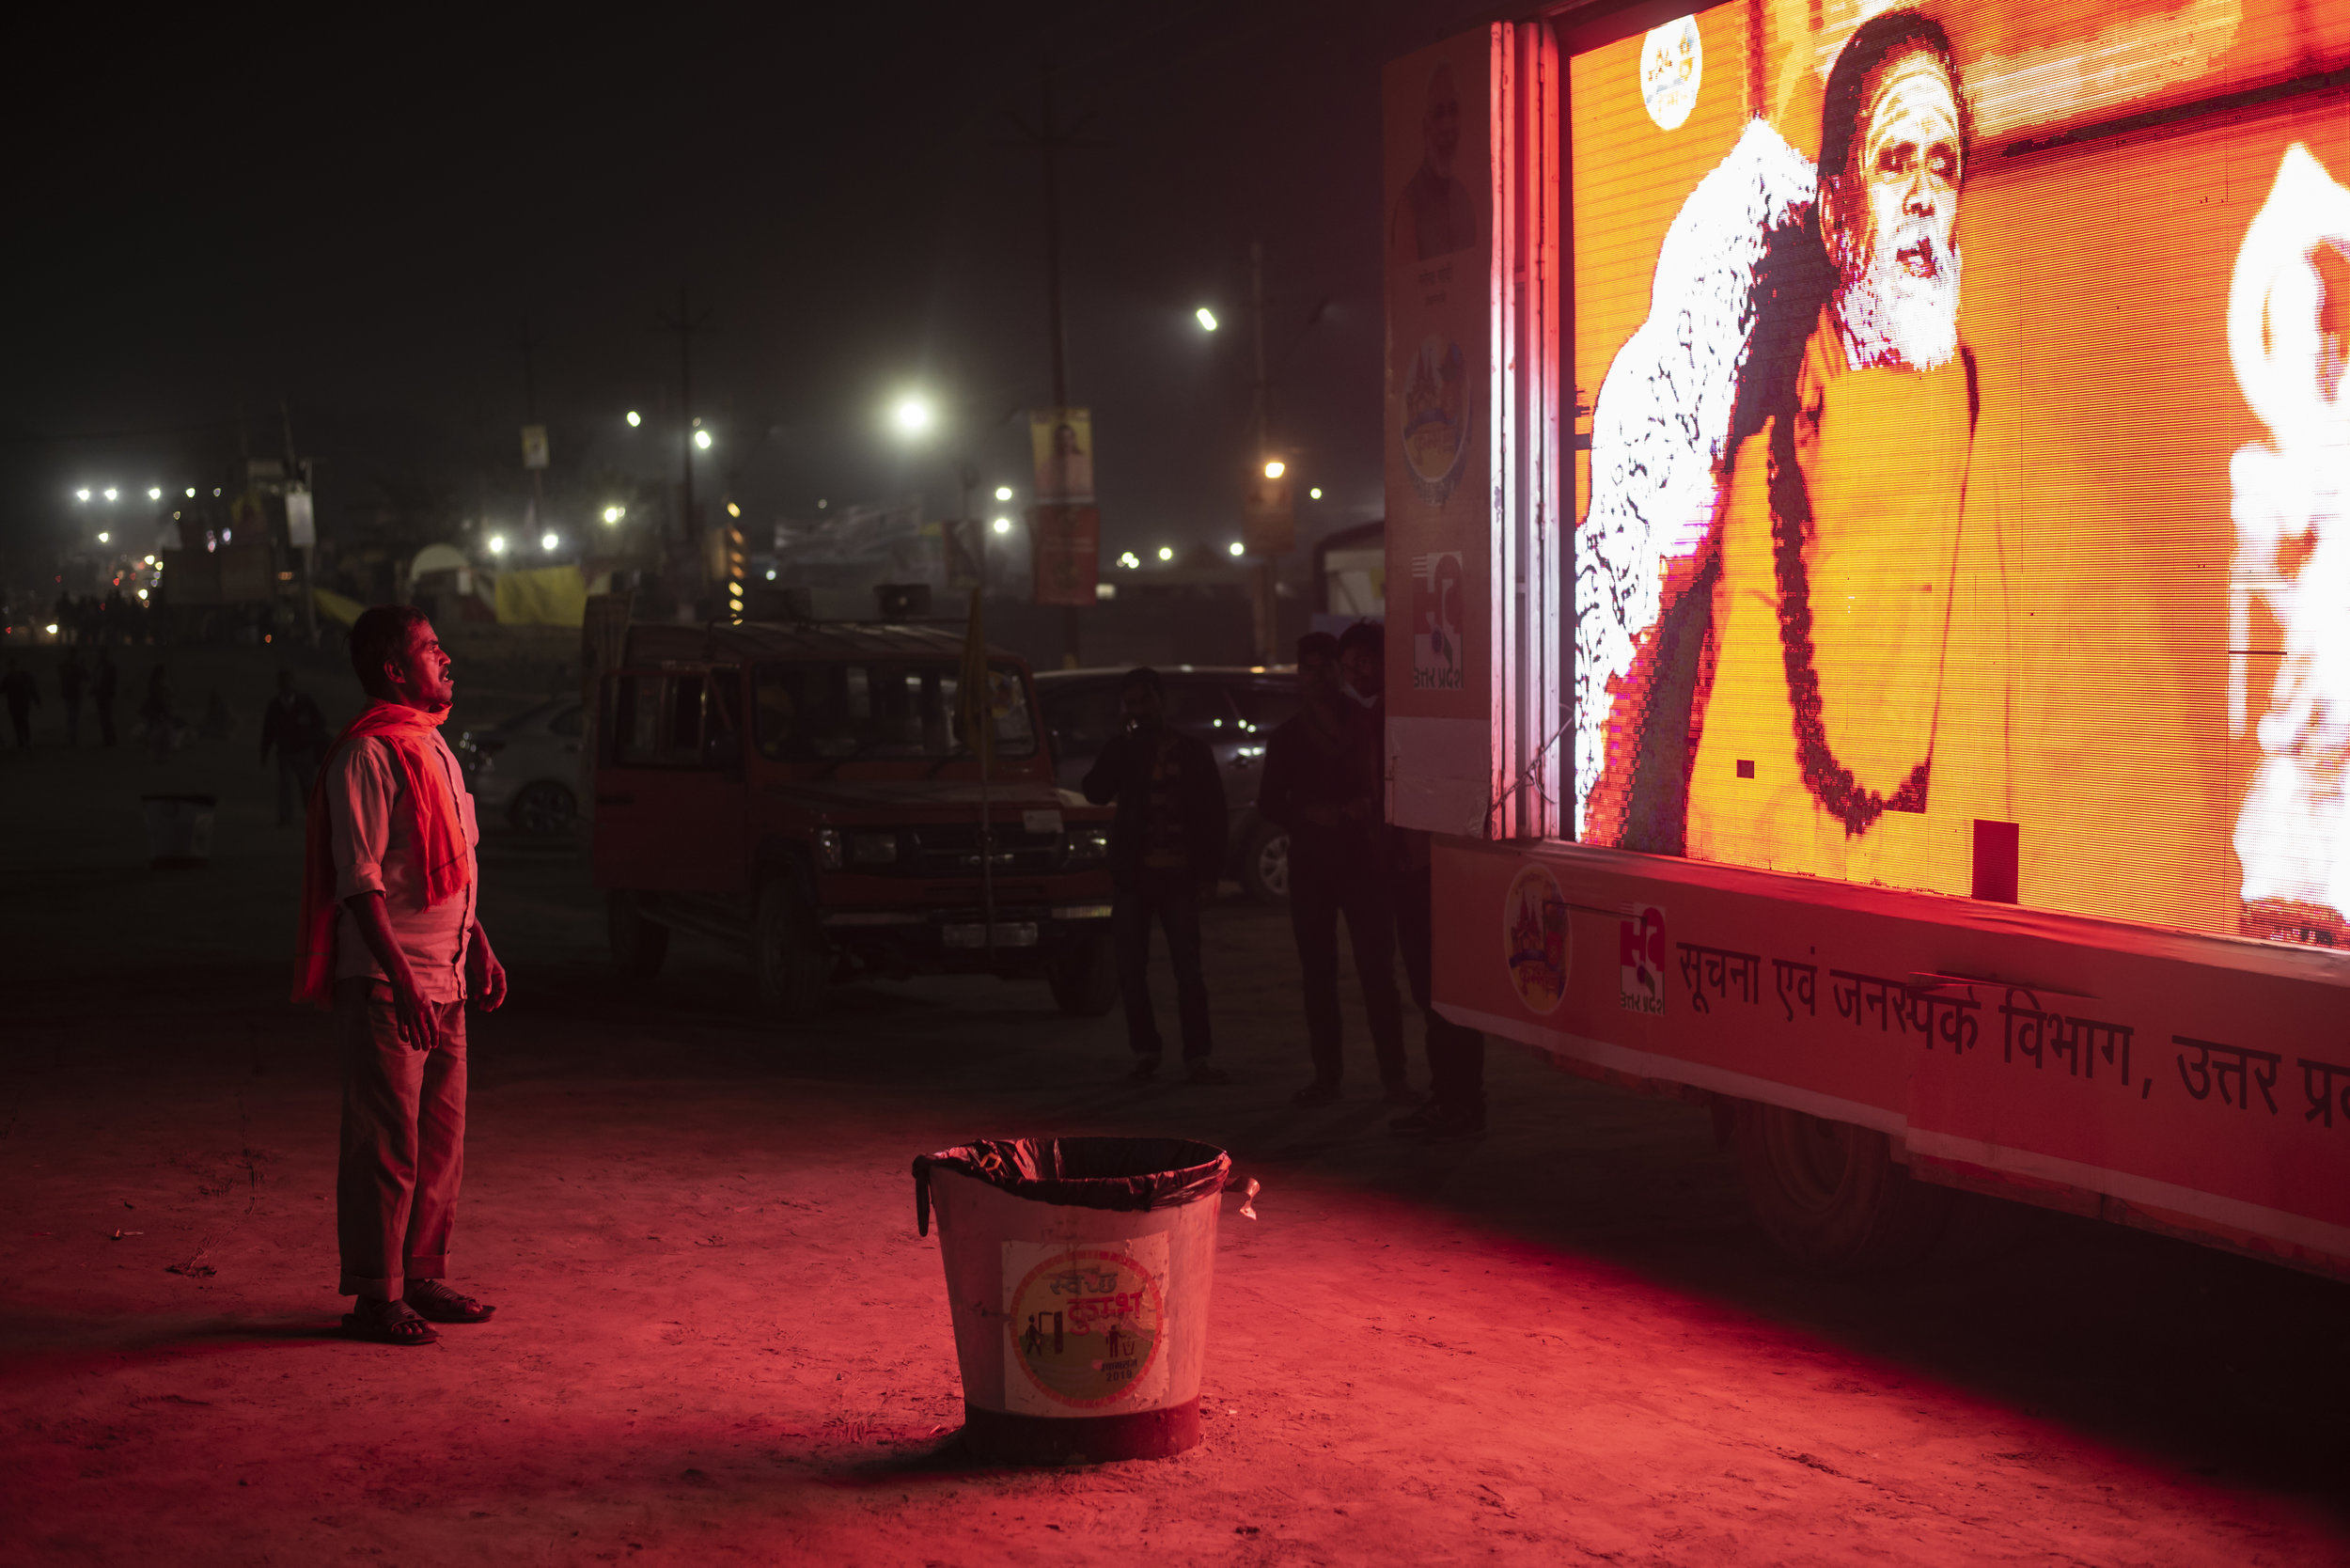 A man stands, captured in crimson light, downloading the teachings from the glowing roadside sadhu. Here at Kumbh consciousness moves. It is pulled and pushed. For some it shrinks and others it expands.